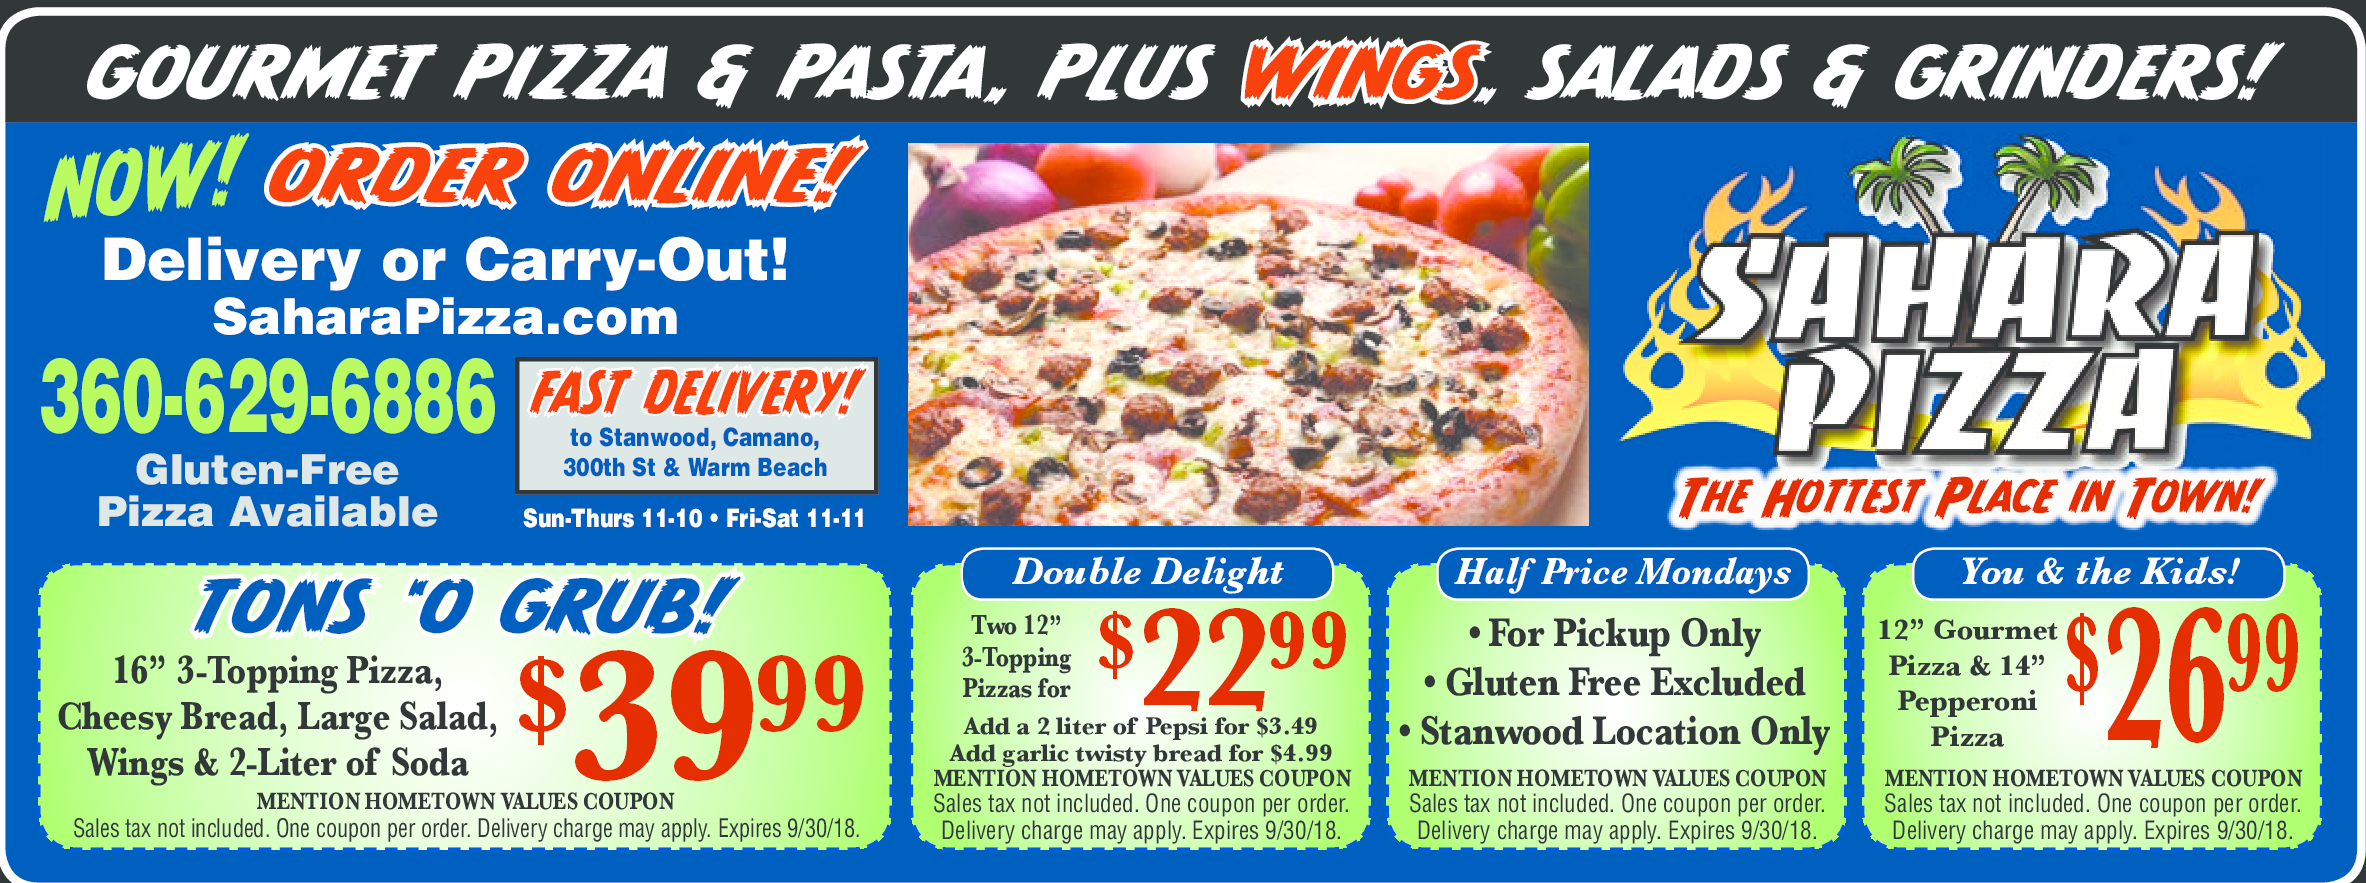 Printable Local Coupons, Free Restaurant Coupons Online